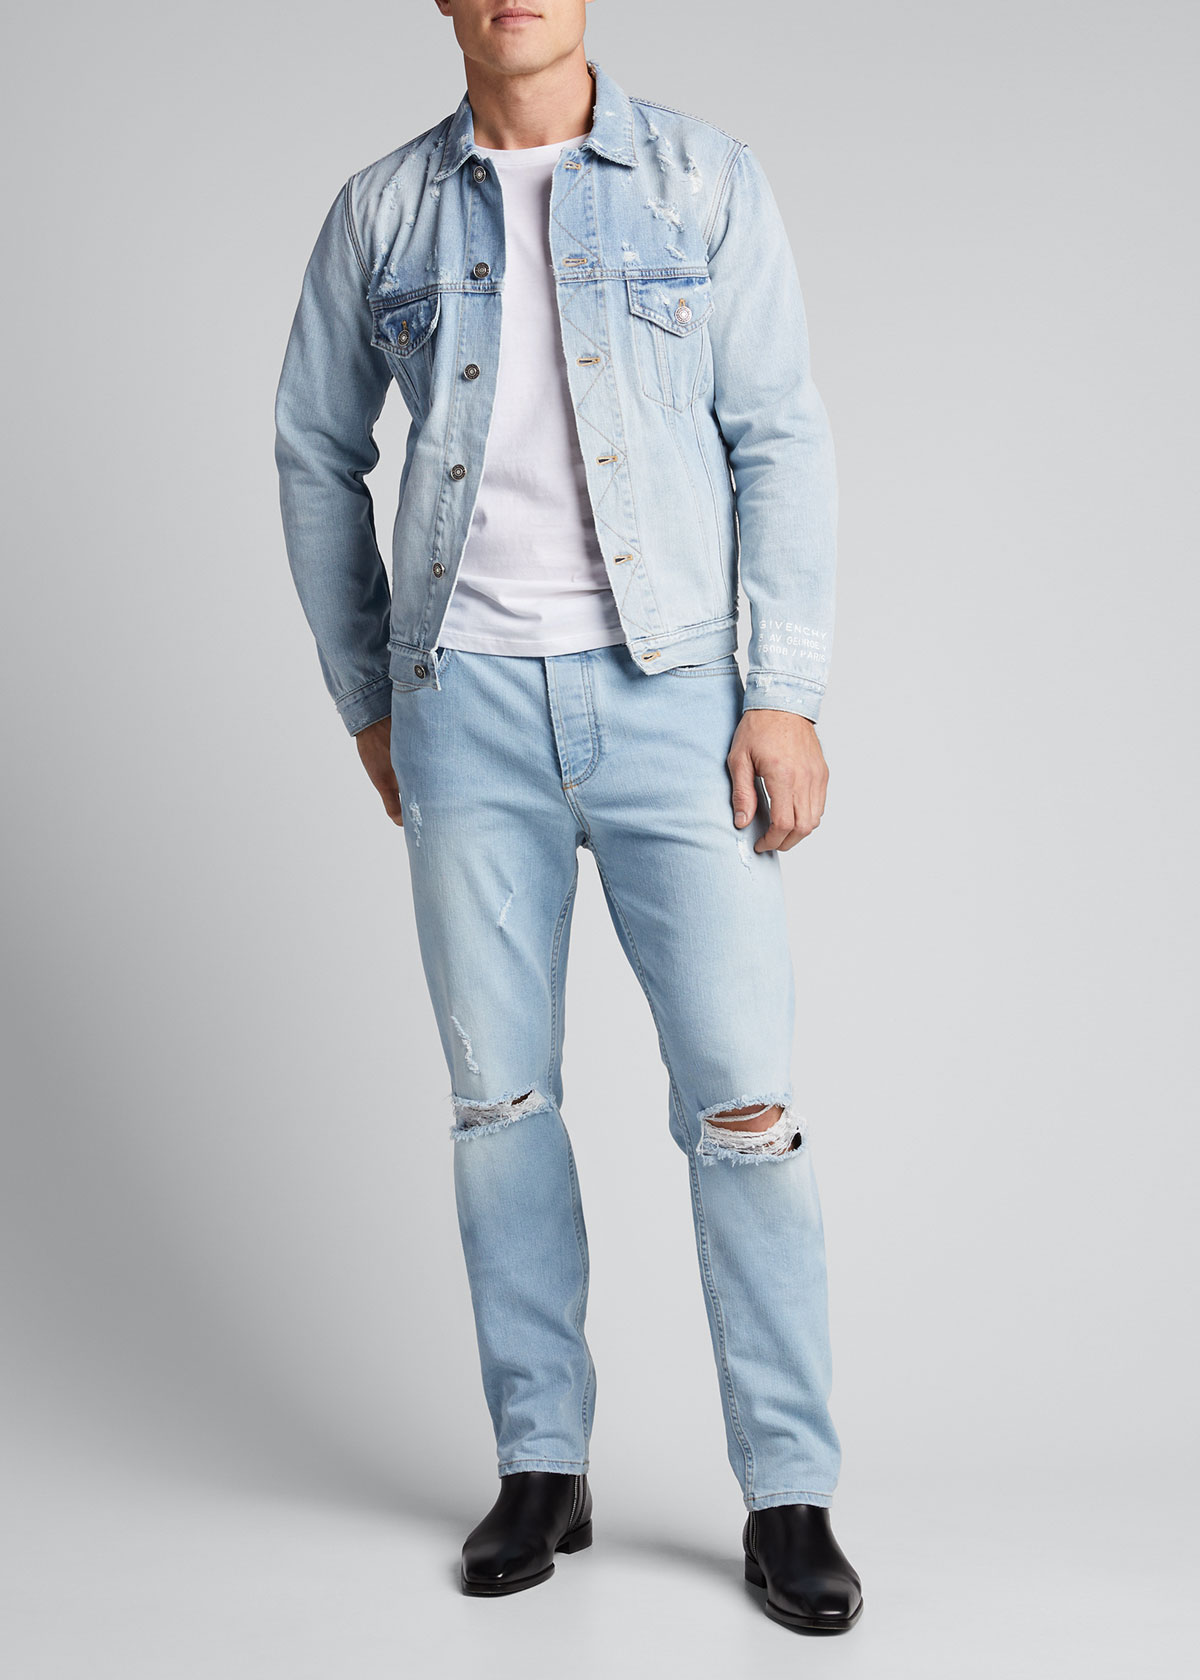 Givenchy Jackets MEN'S CLASSIC-FIT DISTRESSED DENIM JACKET